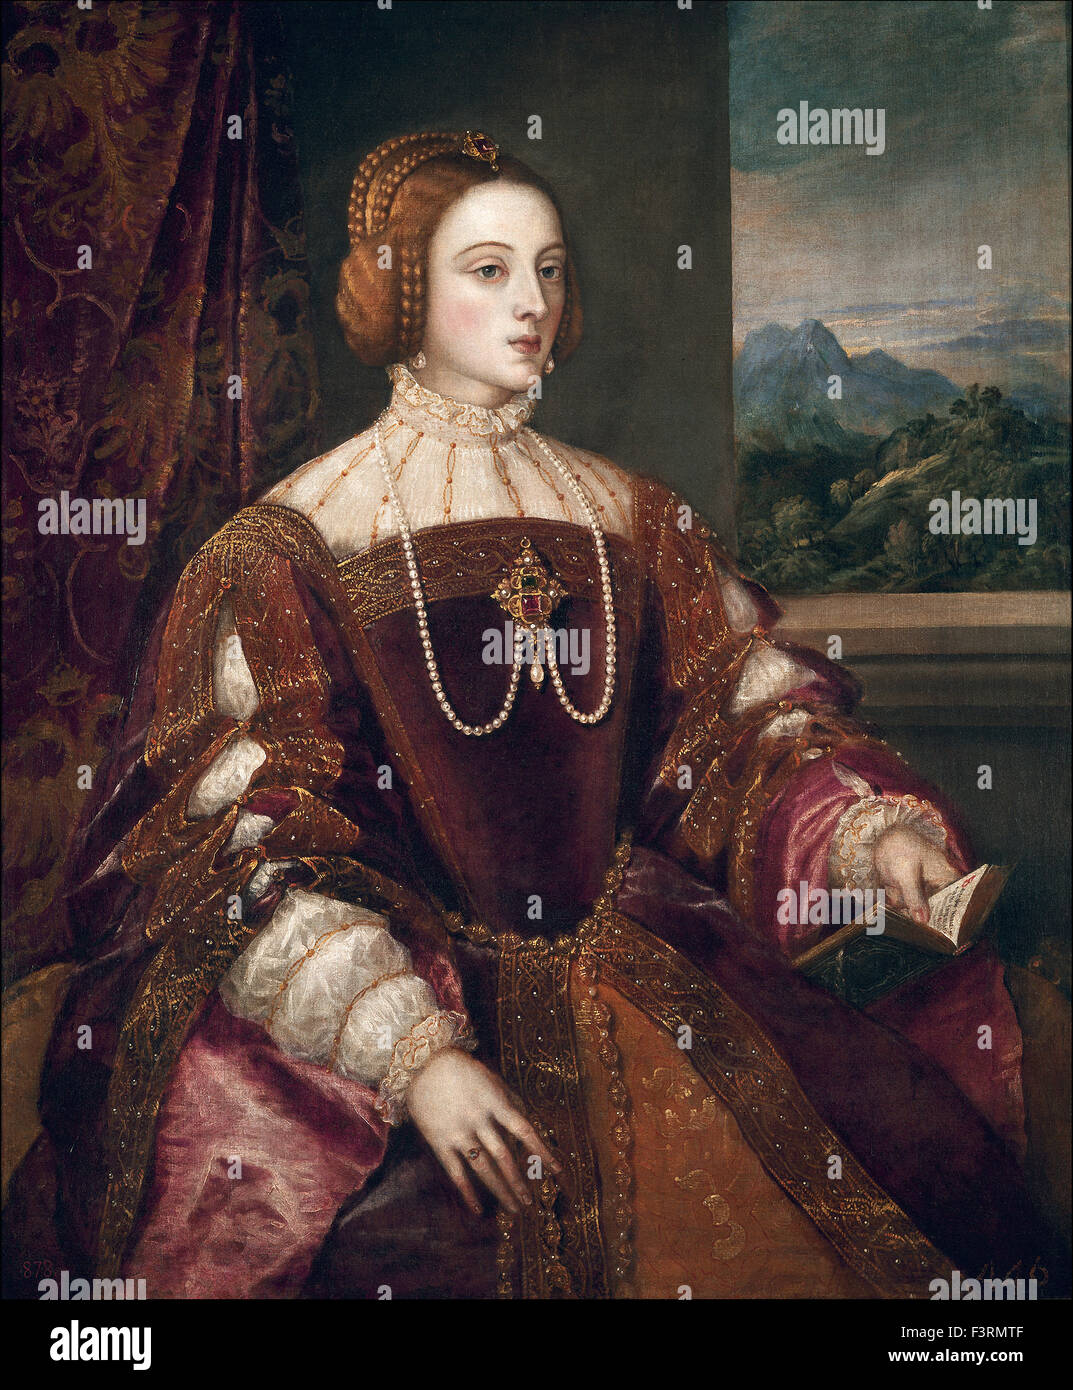 Tiziano Vecellio - Titian - Empress Isabel of Portugal - Stock Image